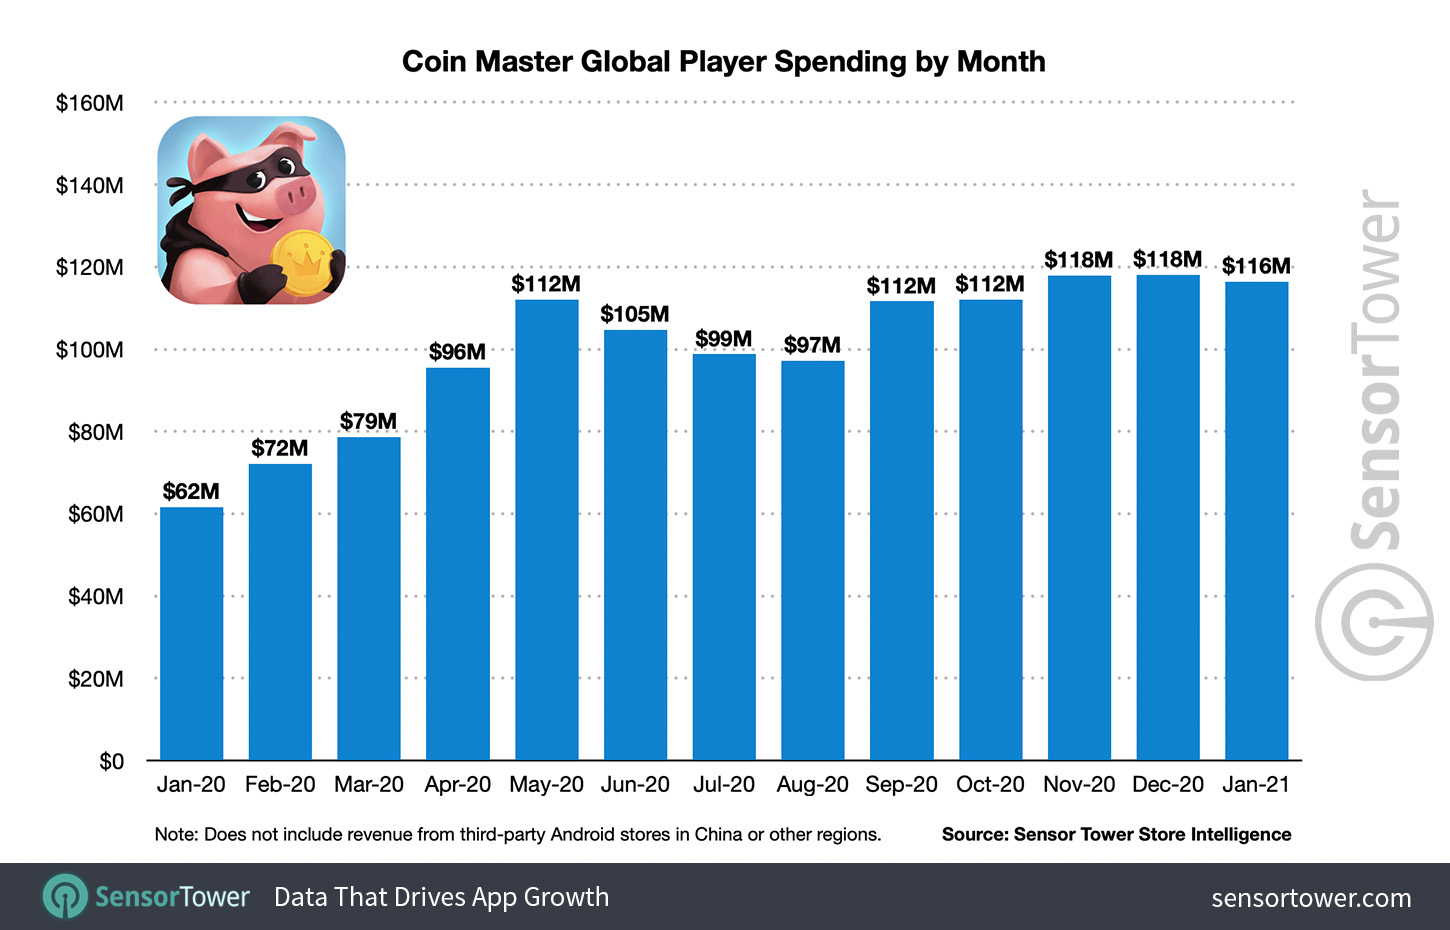 Coin Master Global Player Spending by Month